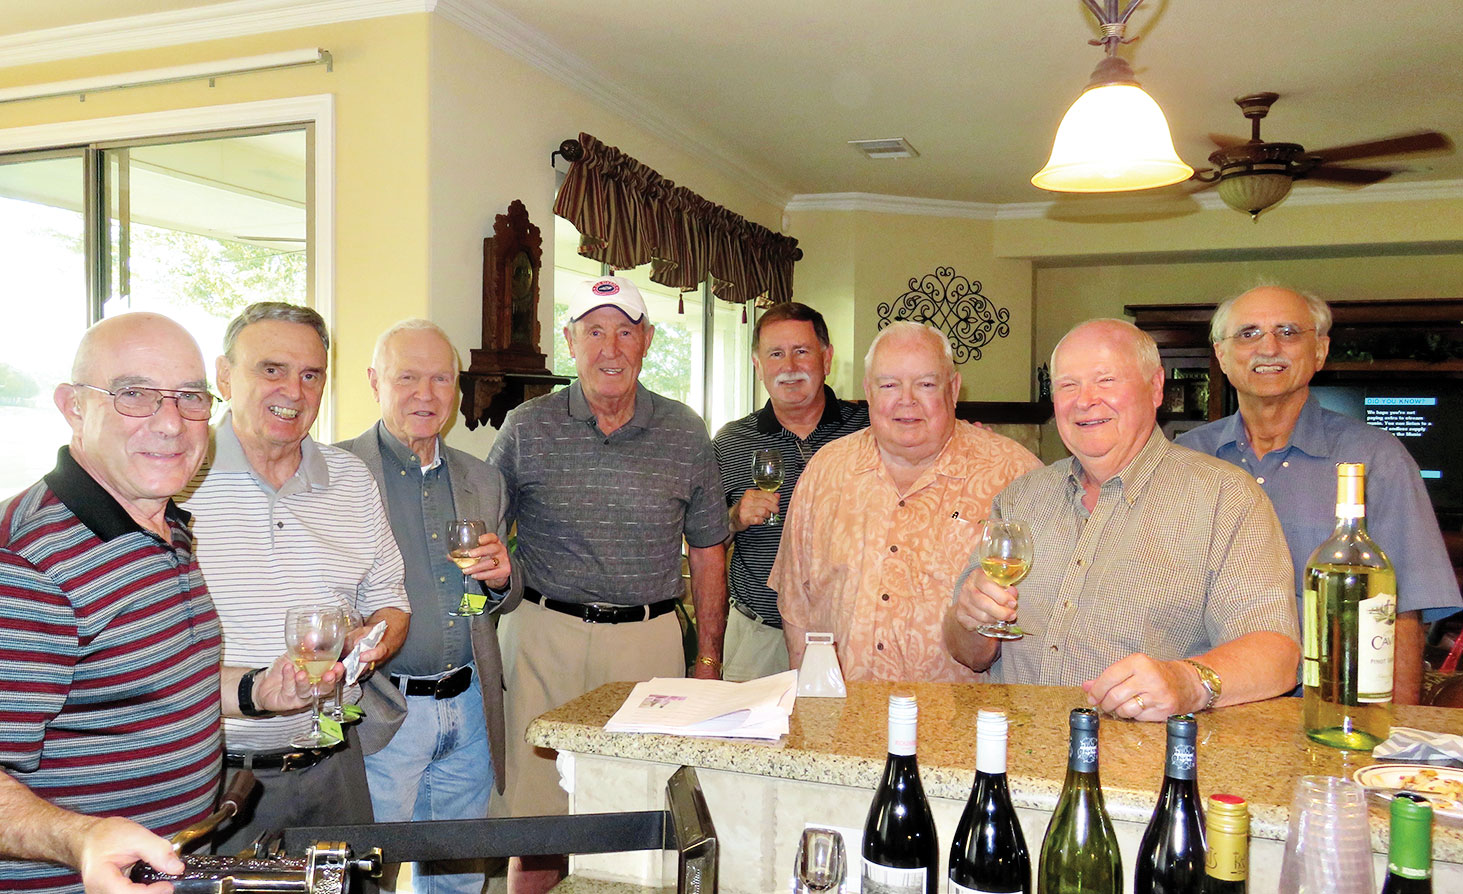 From left the Pinot Men are Mike Aramanda, Charlie Snowden, Al Wright, Jim Fox, Dave Parker, John O'Keefe, Frank Deardorff and Pete Toppan